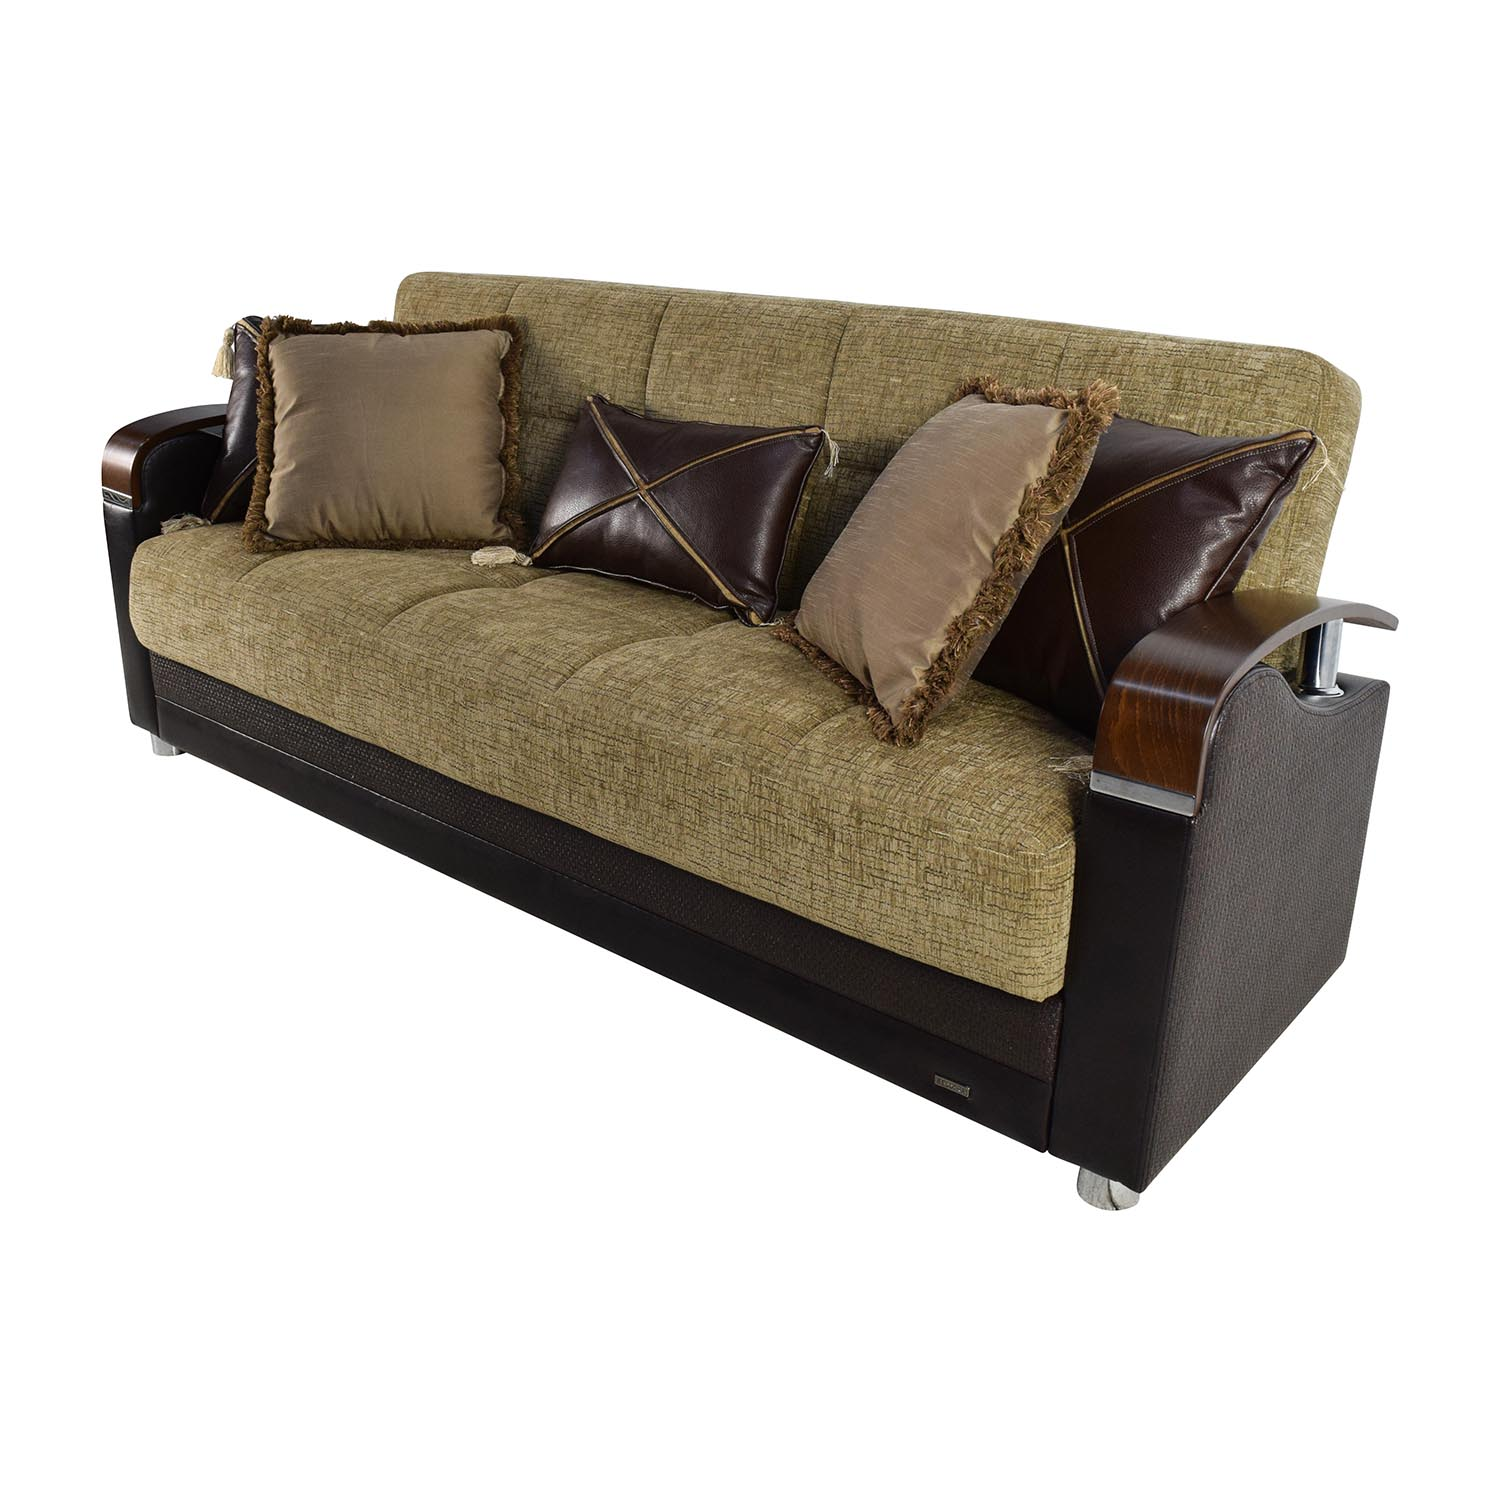 Bellona Bellona Luna Gold and Brown Sofa Sleeper with Pillows dimensions